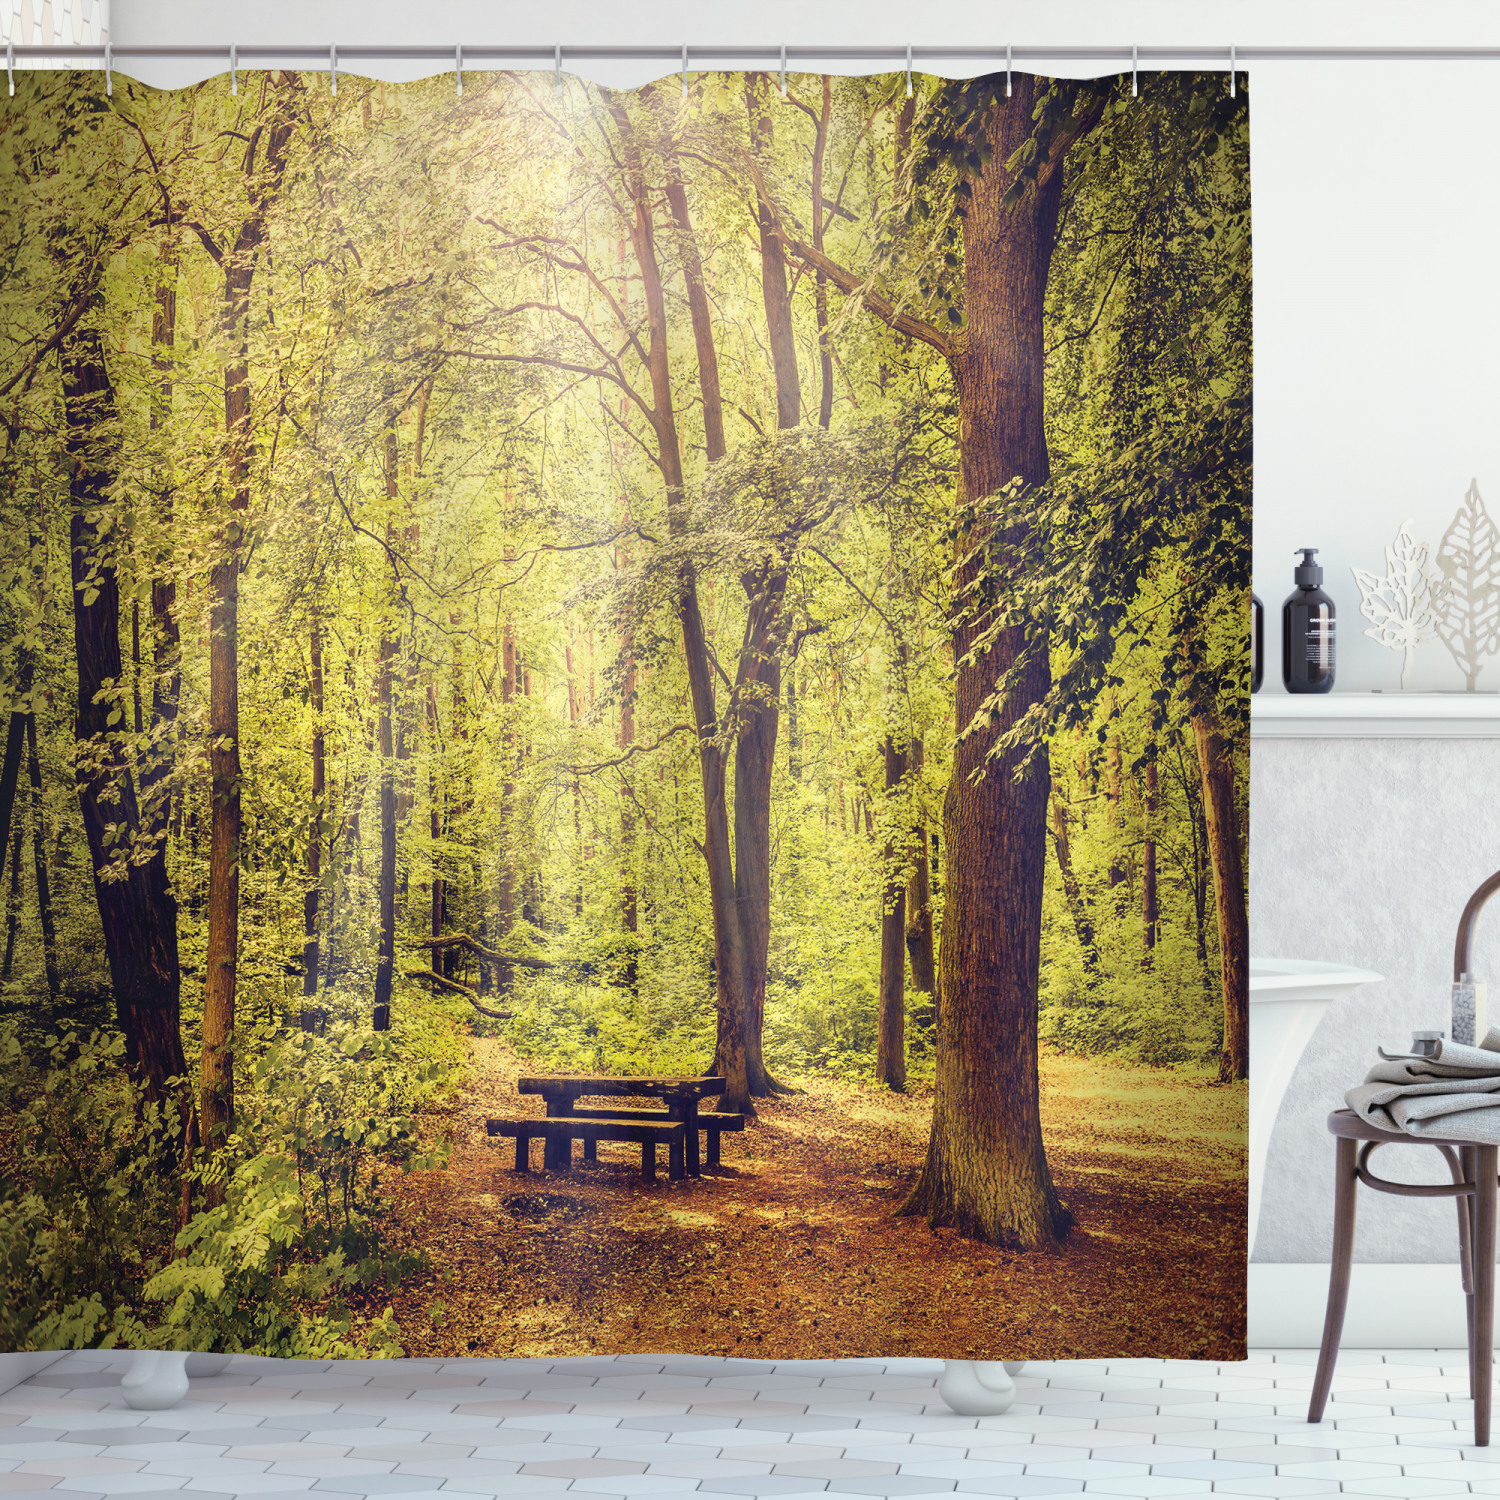 forest shower curtain picnic table in the forest foliage greenery nature theme summer and winter theme fabric bathroom set with hooks green brown